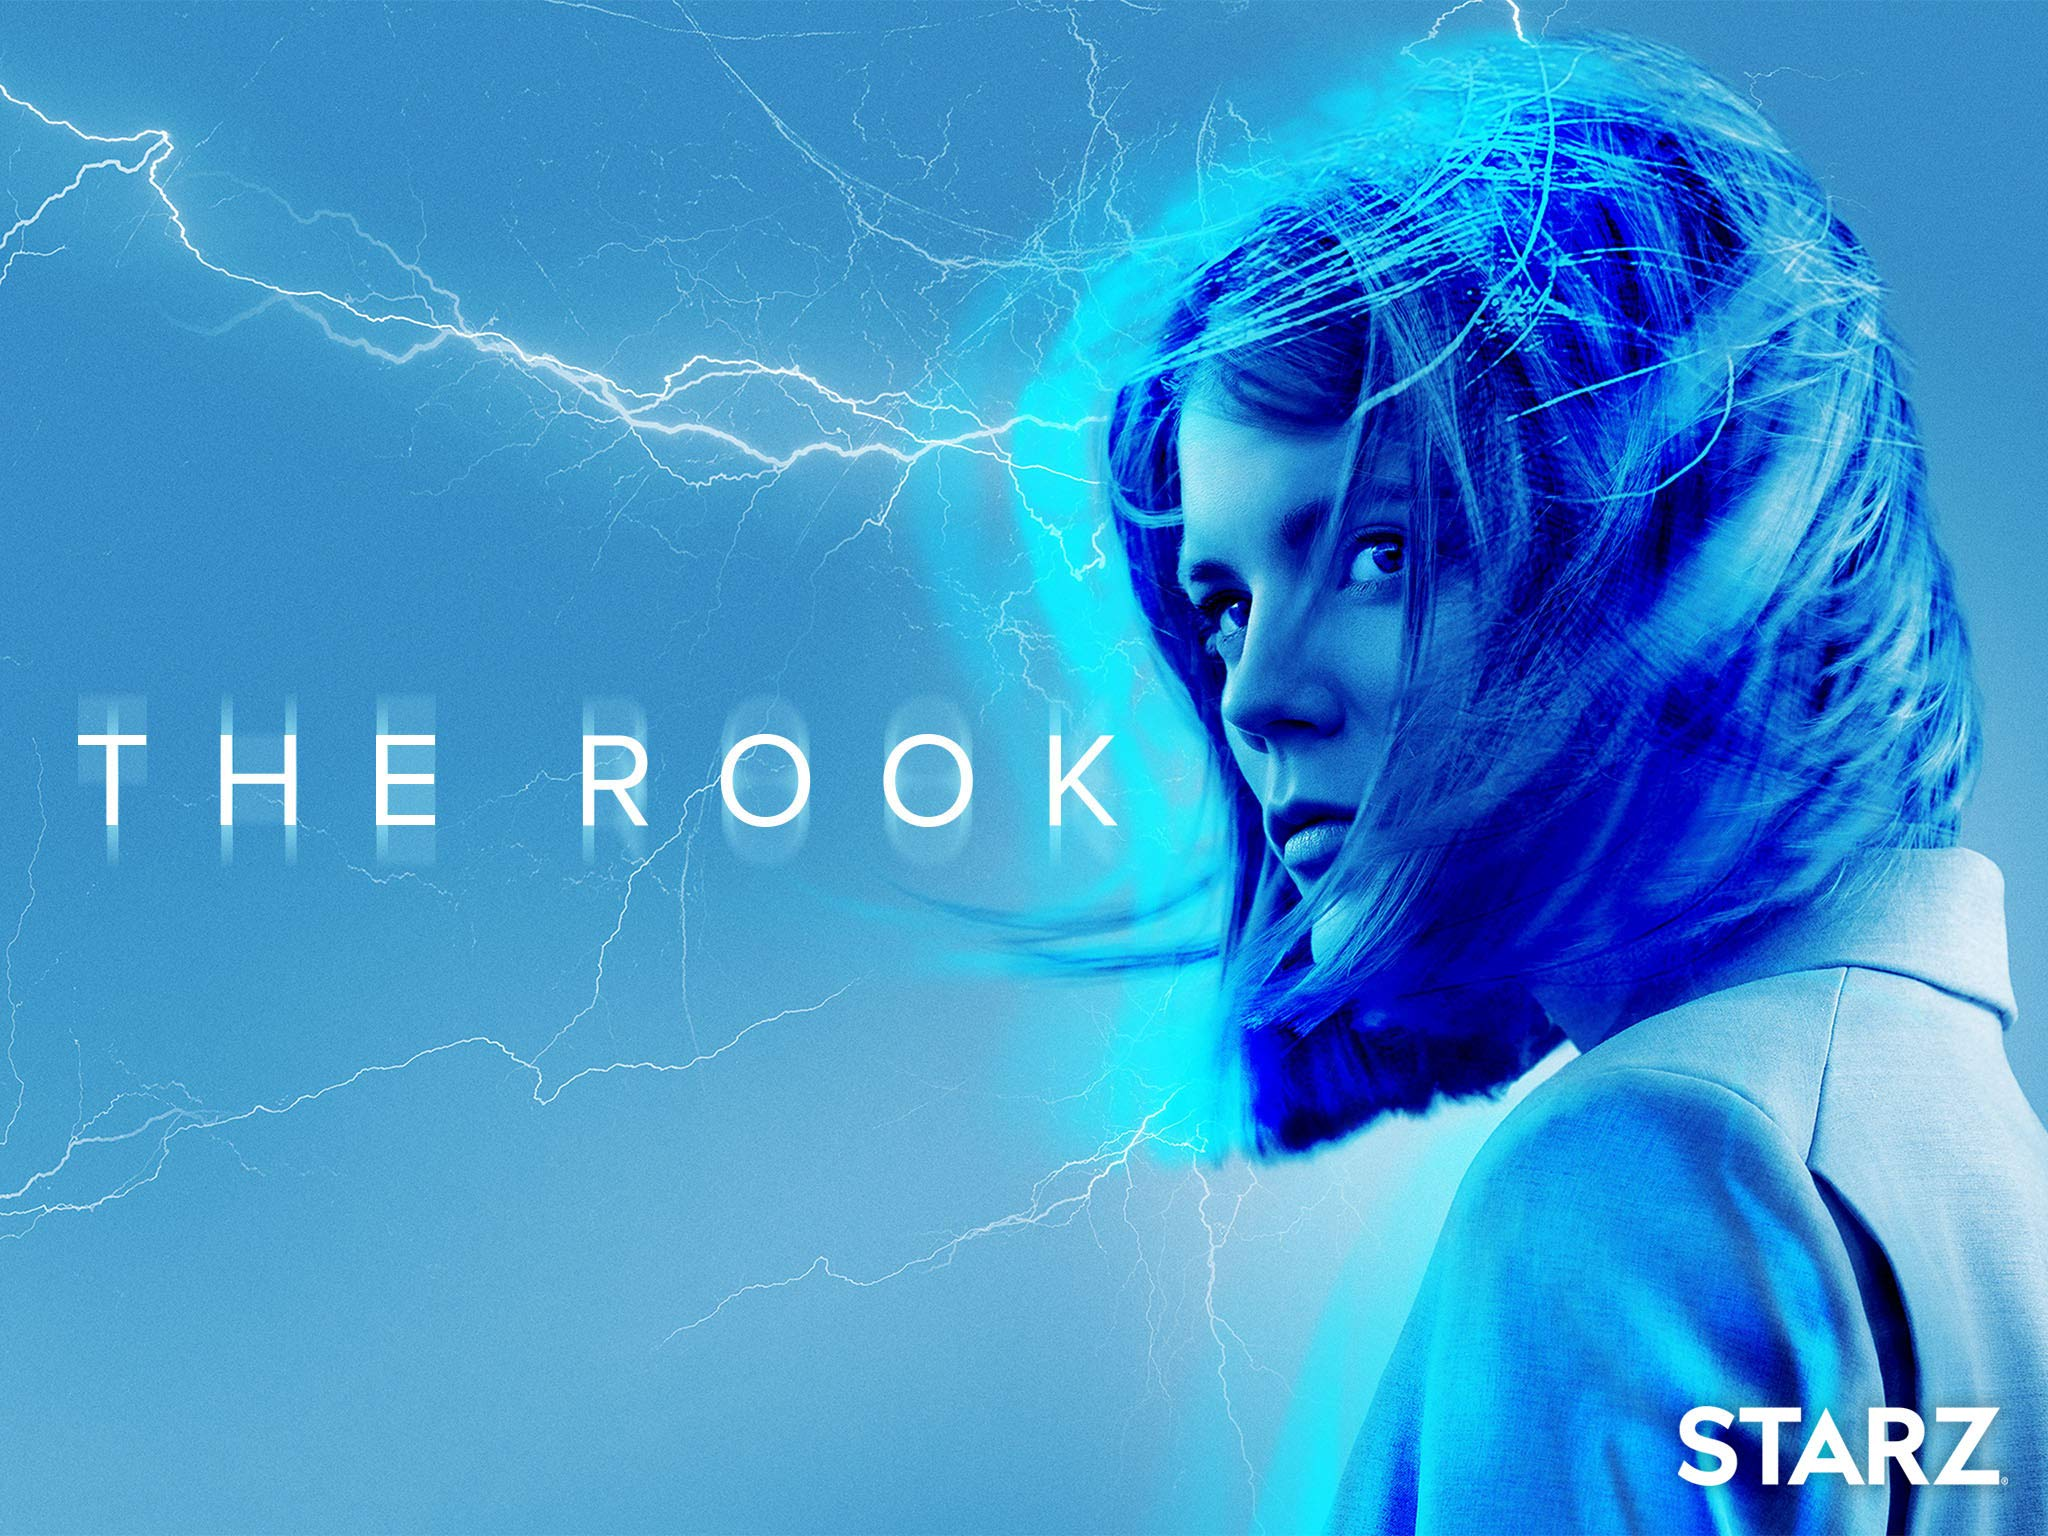 cd14900db6433 Amazon.com: Watch The Rook | Prime Video